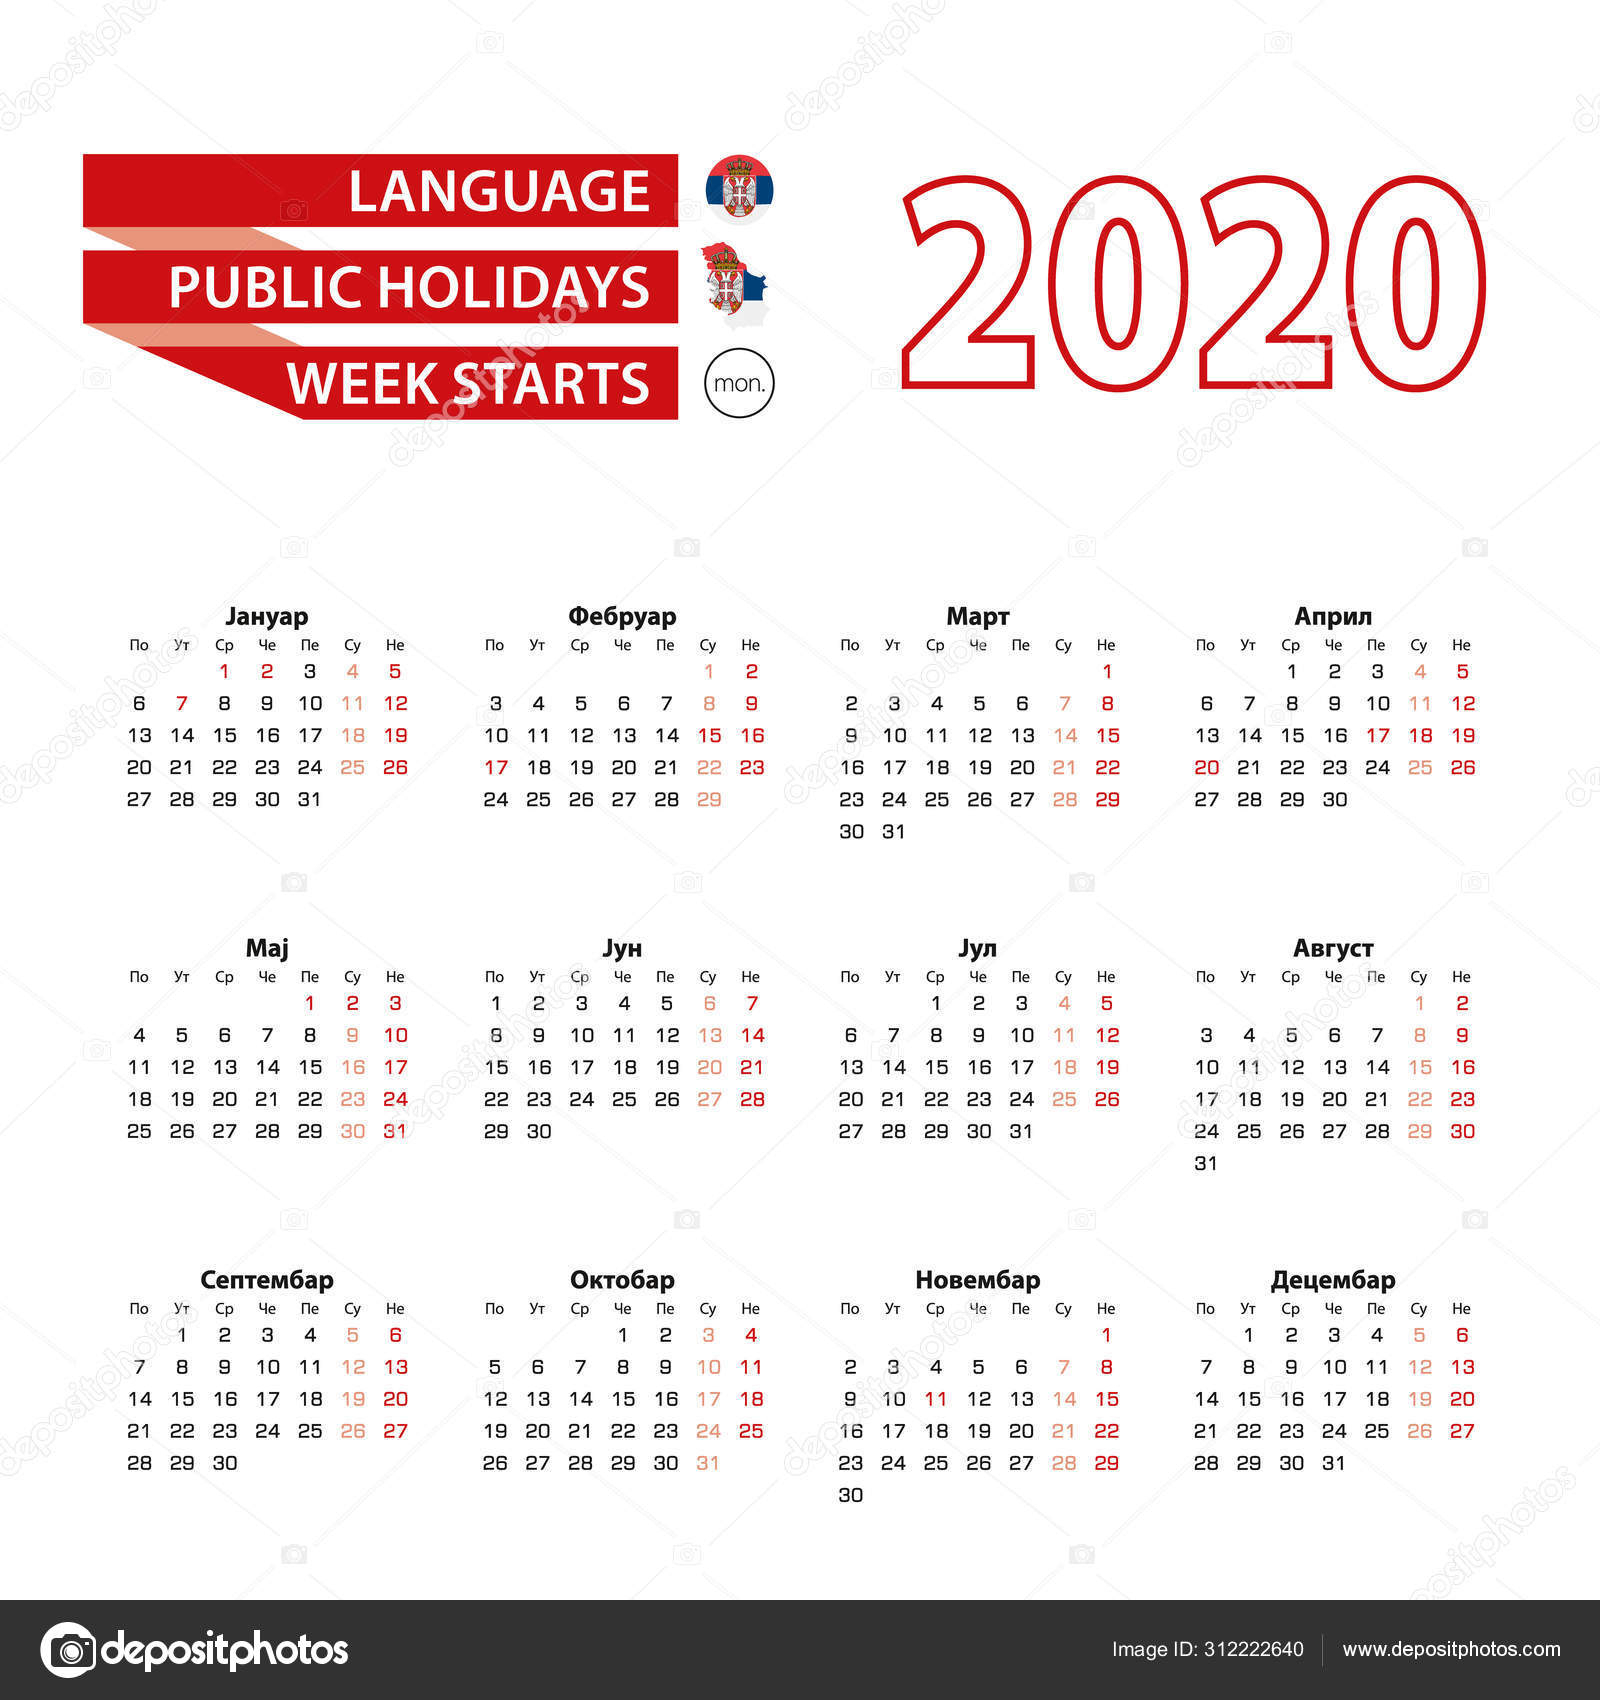 Calendar 2020 In Serbian Language With Public Holidays The